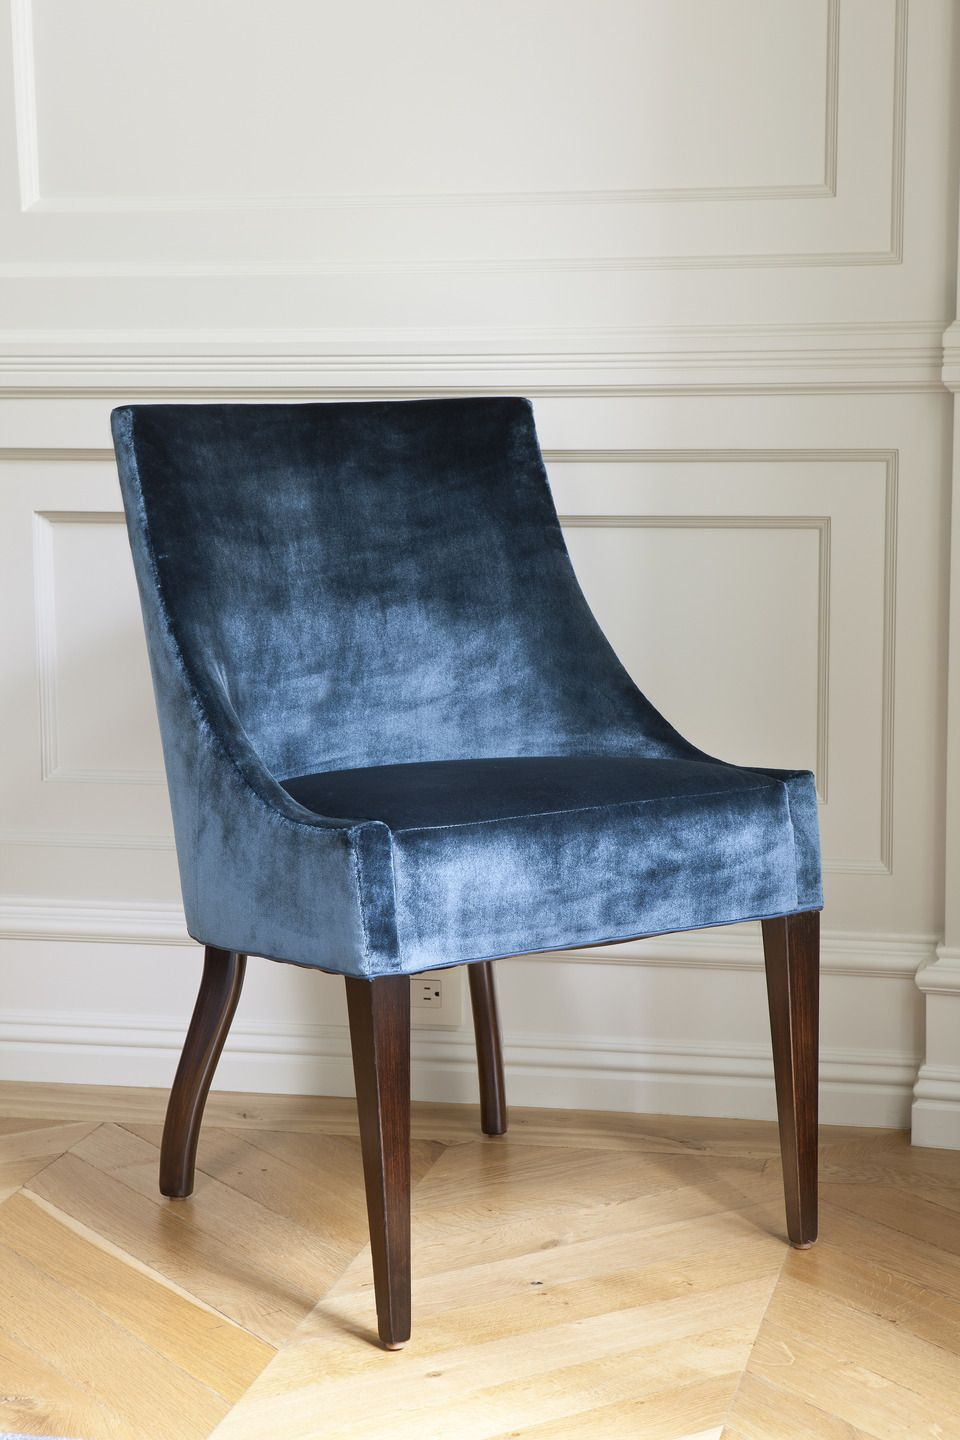 Marvelous Coco Dining Chair For The Home Dining Transitional Caraccident5 Cool Chair Designs And Ideas Caraccident5Info